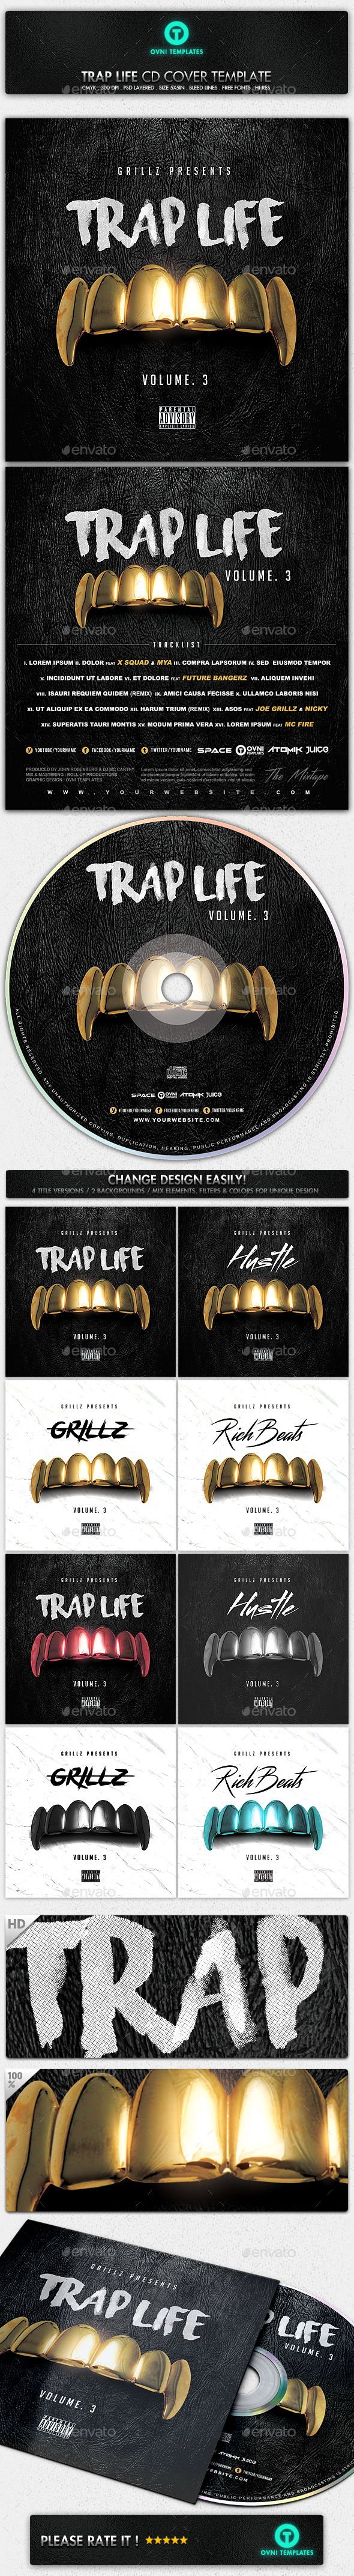 Grillz Design Template